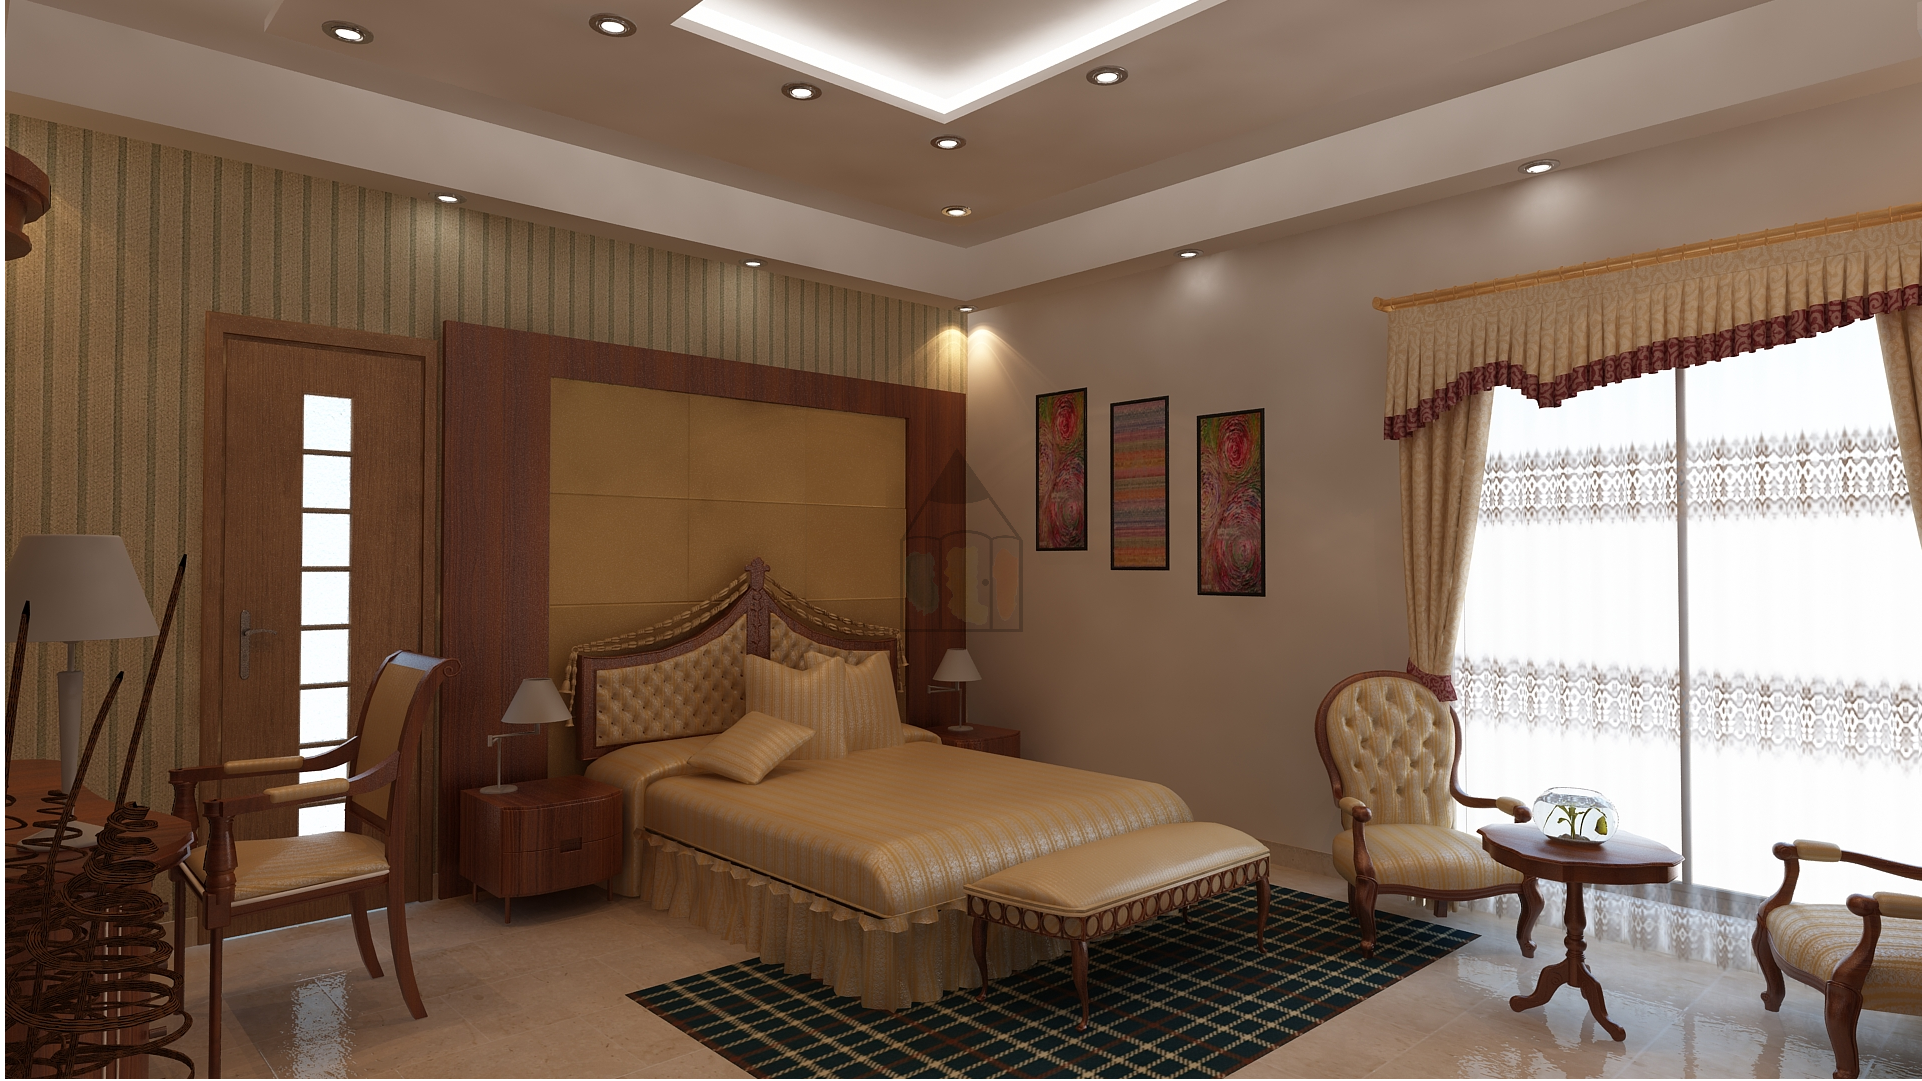 Pakistani Bedroom Design In Pakistan Clients Prefer Their Bedrooms